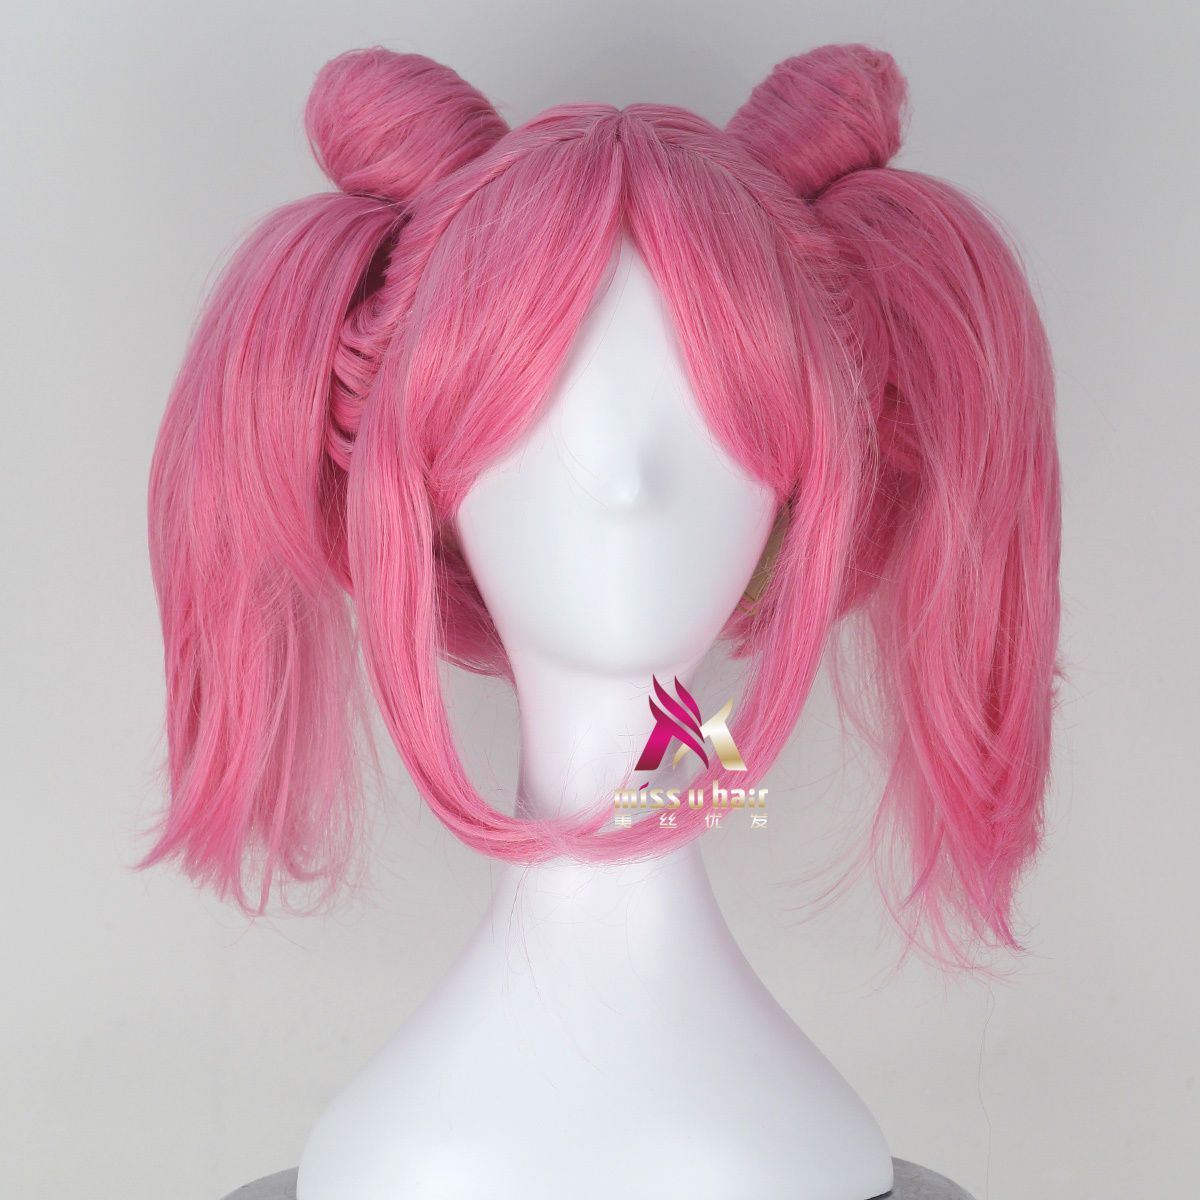 Sailor Moon Chibi Usa Girls Short Straight Pink Game Cosplay Wig